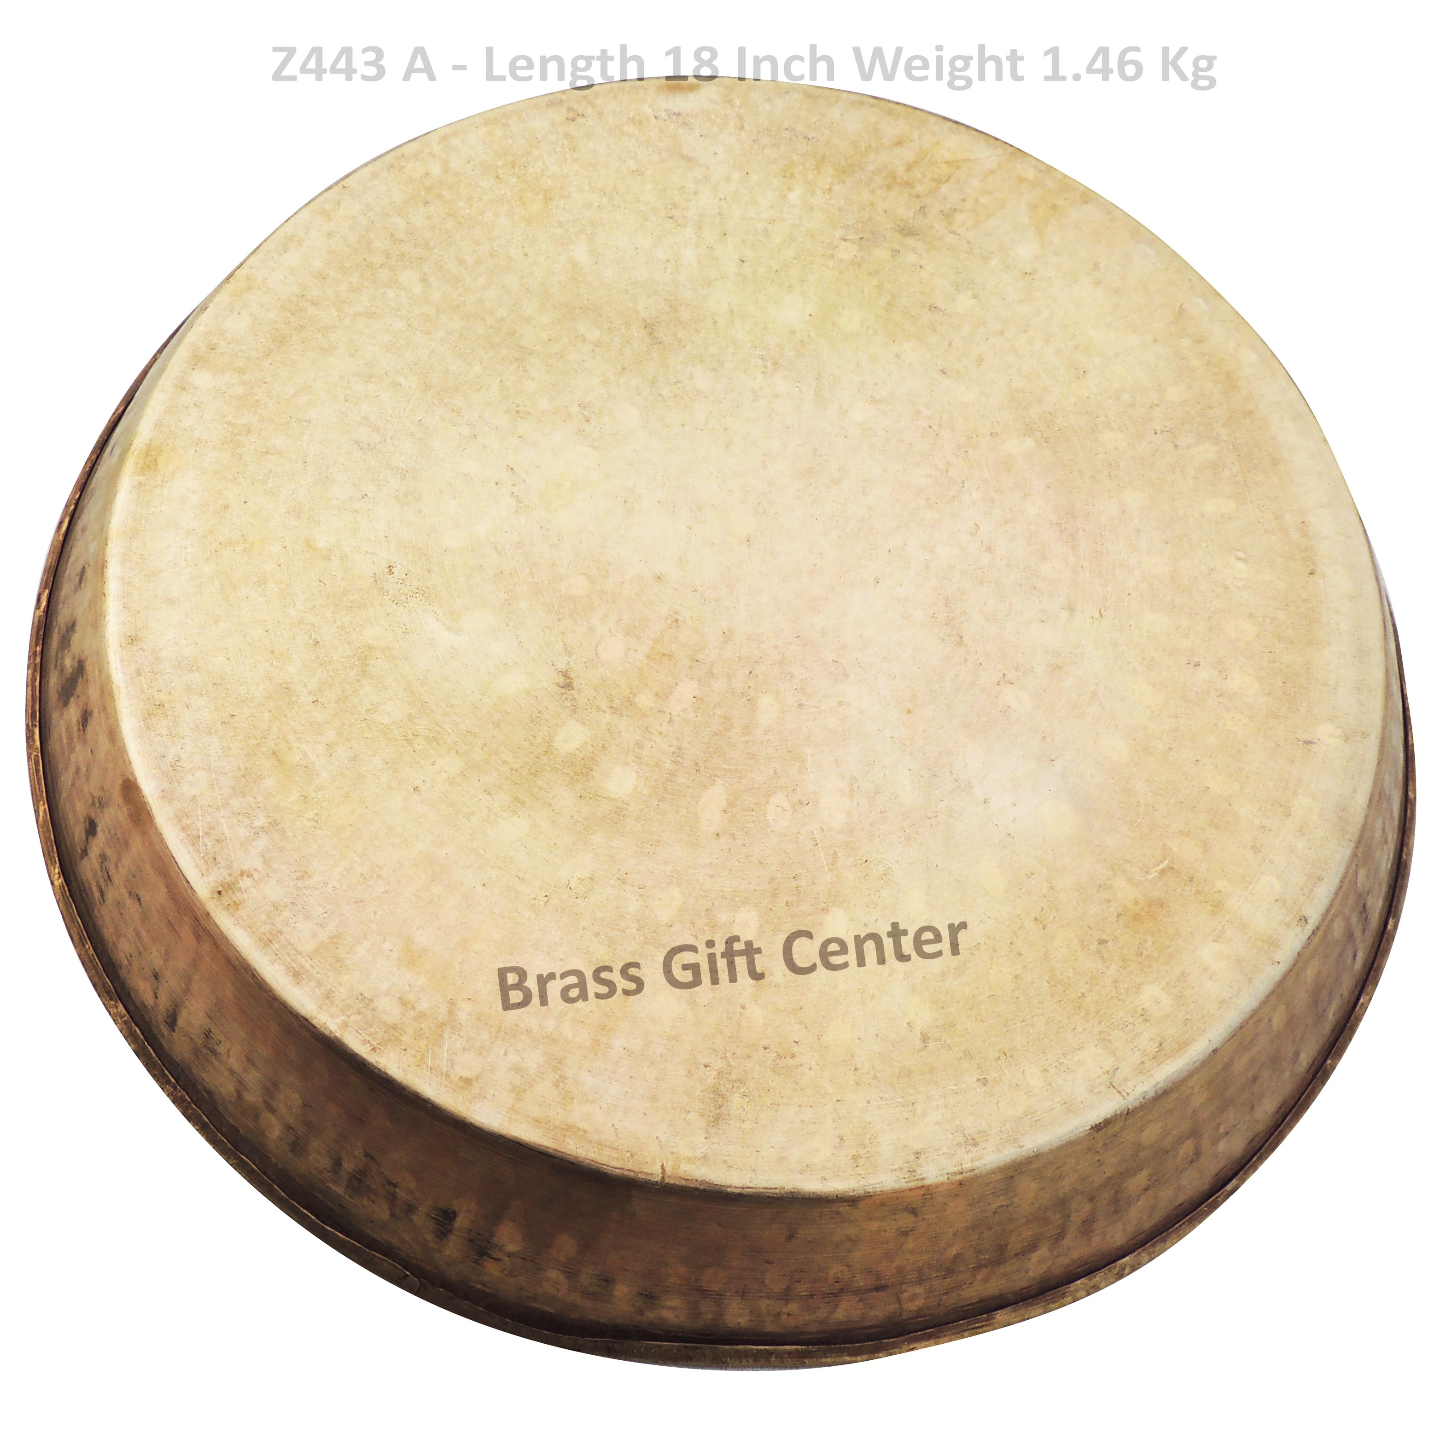 Brass Thaal With Brass Finish Diameter 18 Inch (Z443 A)